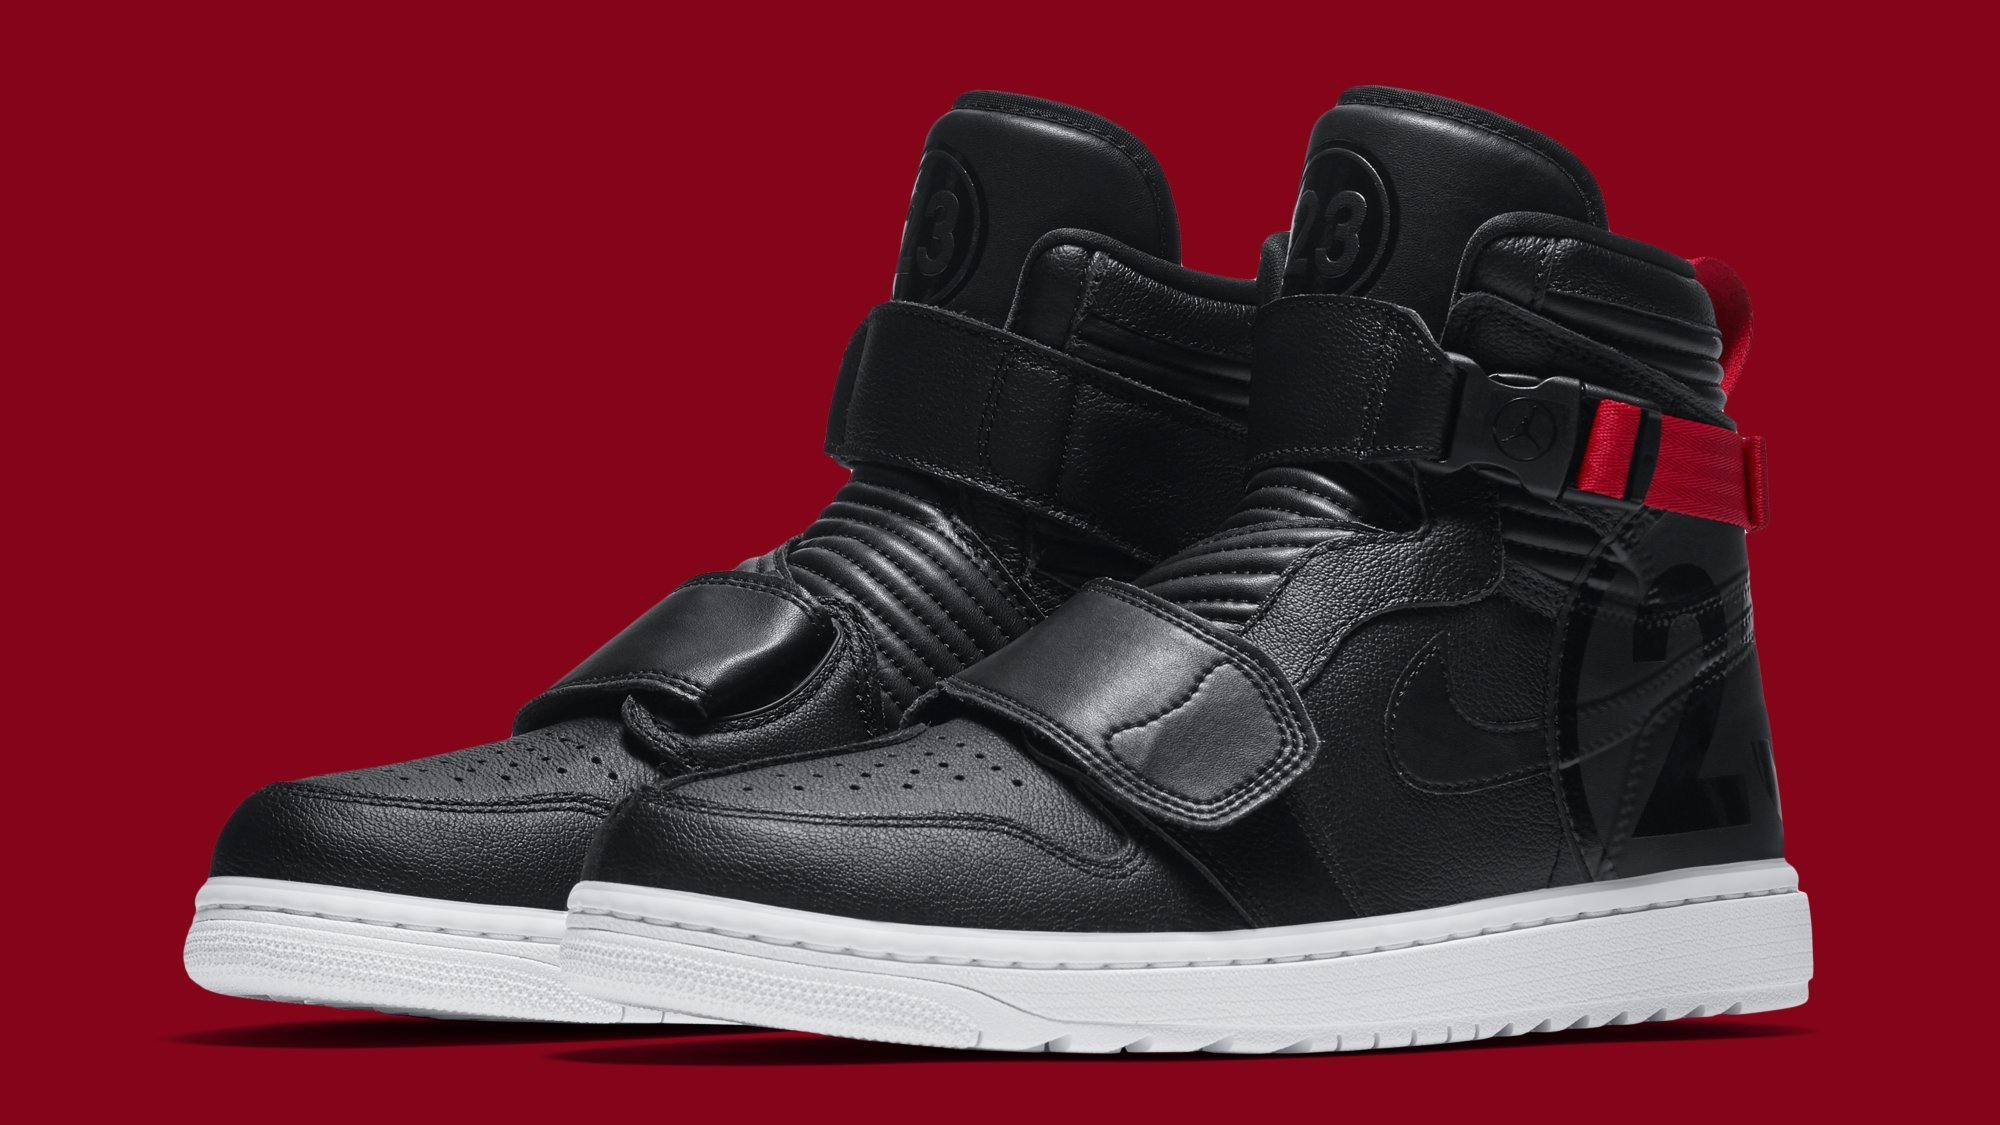 low cost 53e51 e3165 Air Jordan 1 Motorsports  Black Red  AT3146-001 Release Date   Sole  Collector